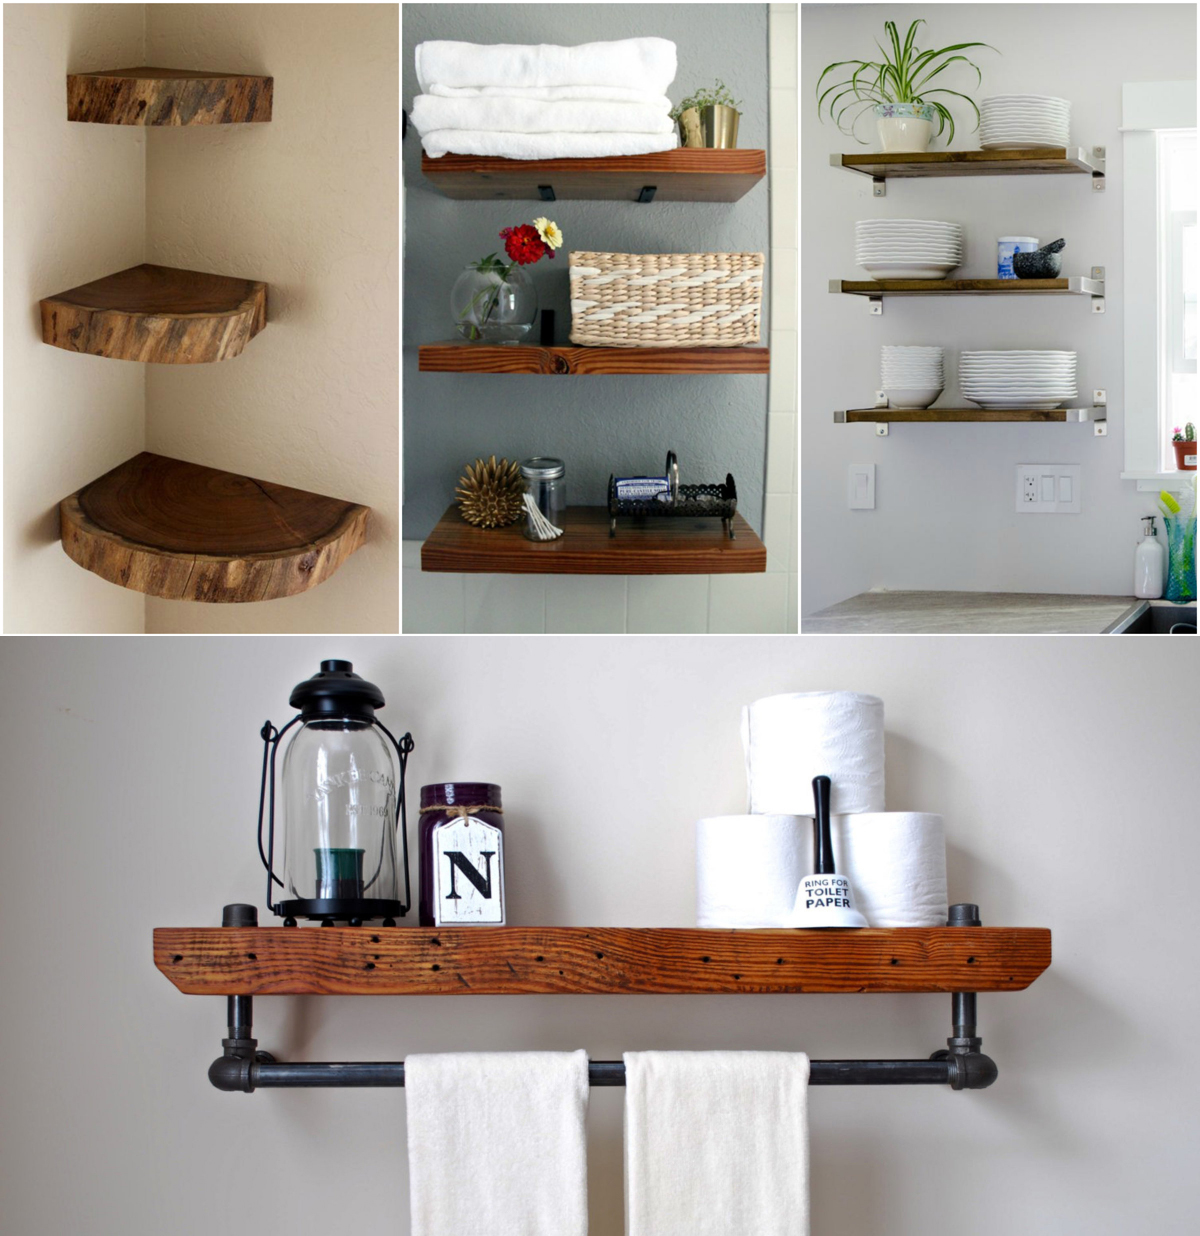 Find Out How To Go For DIY Floating Shelves And Bathroom